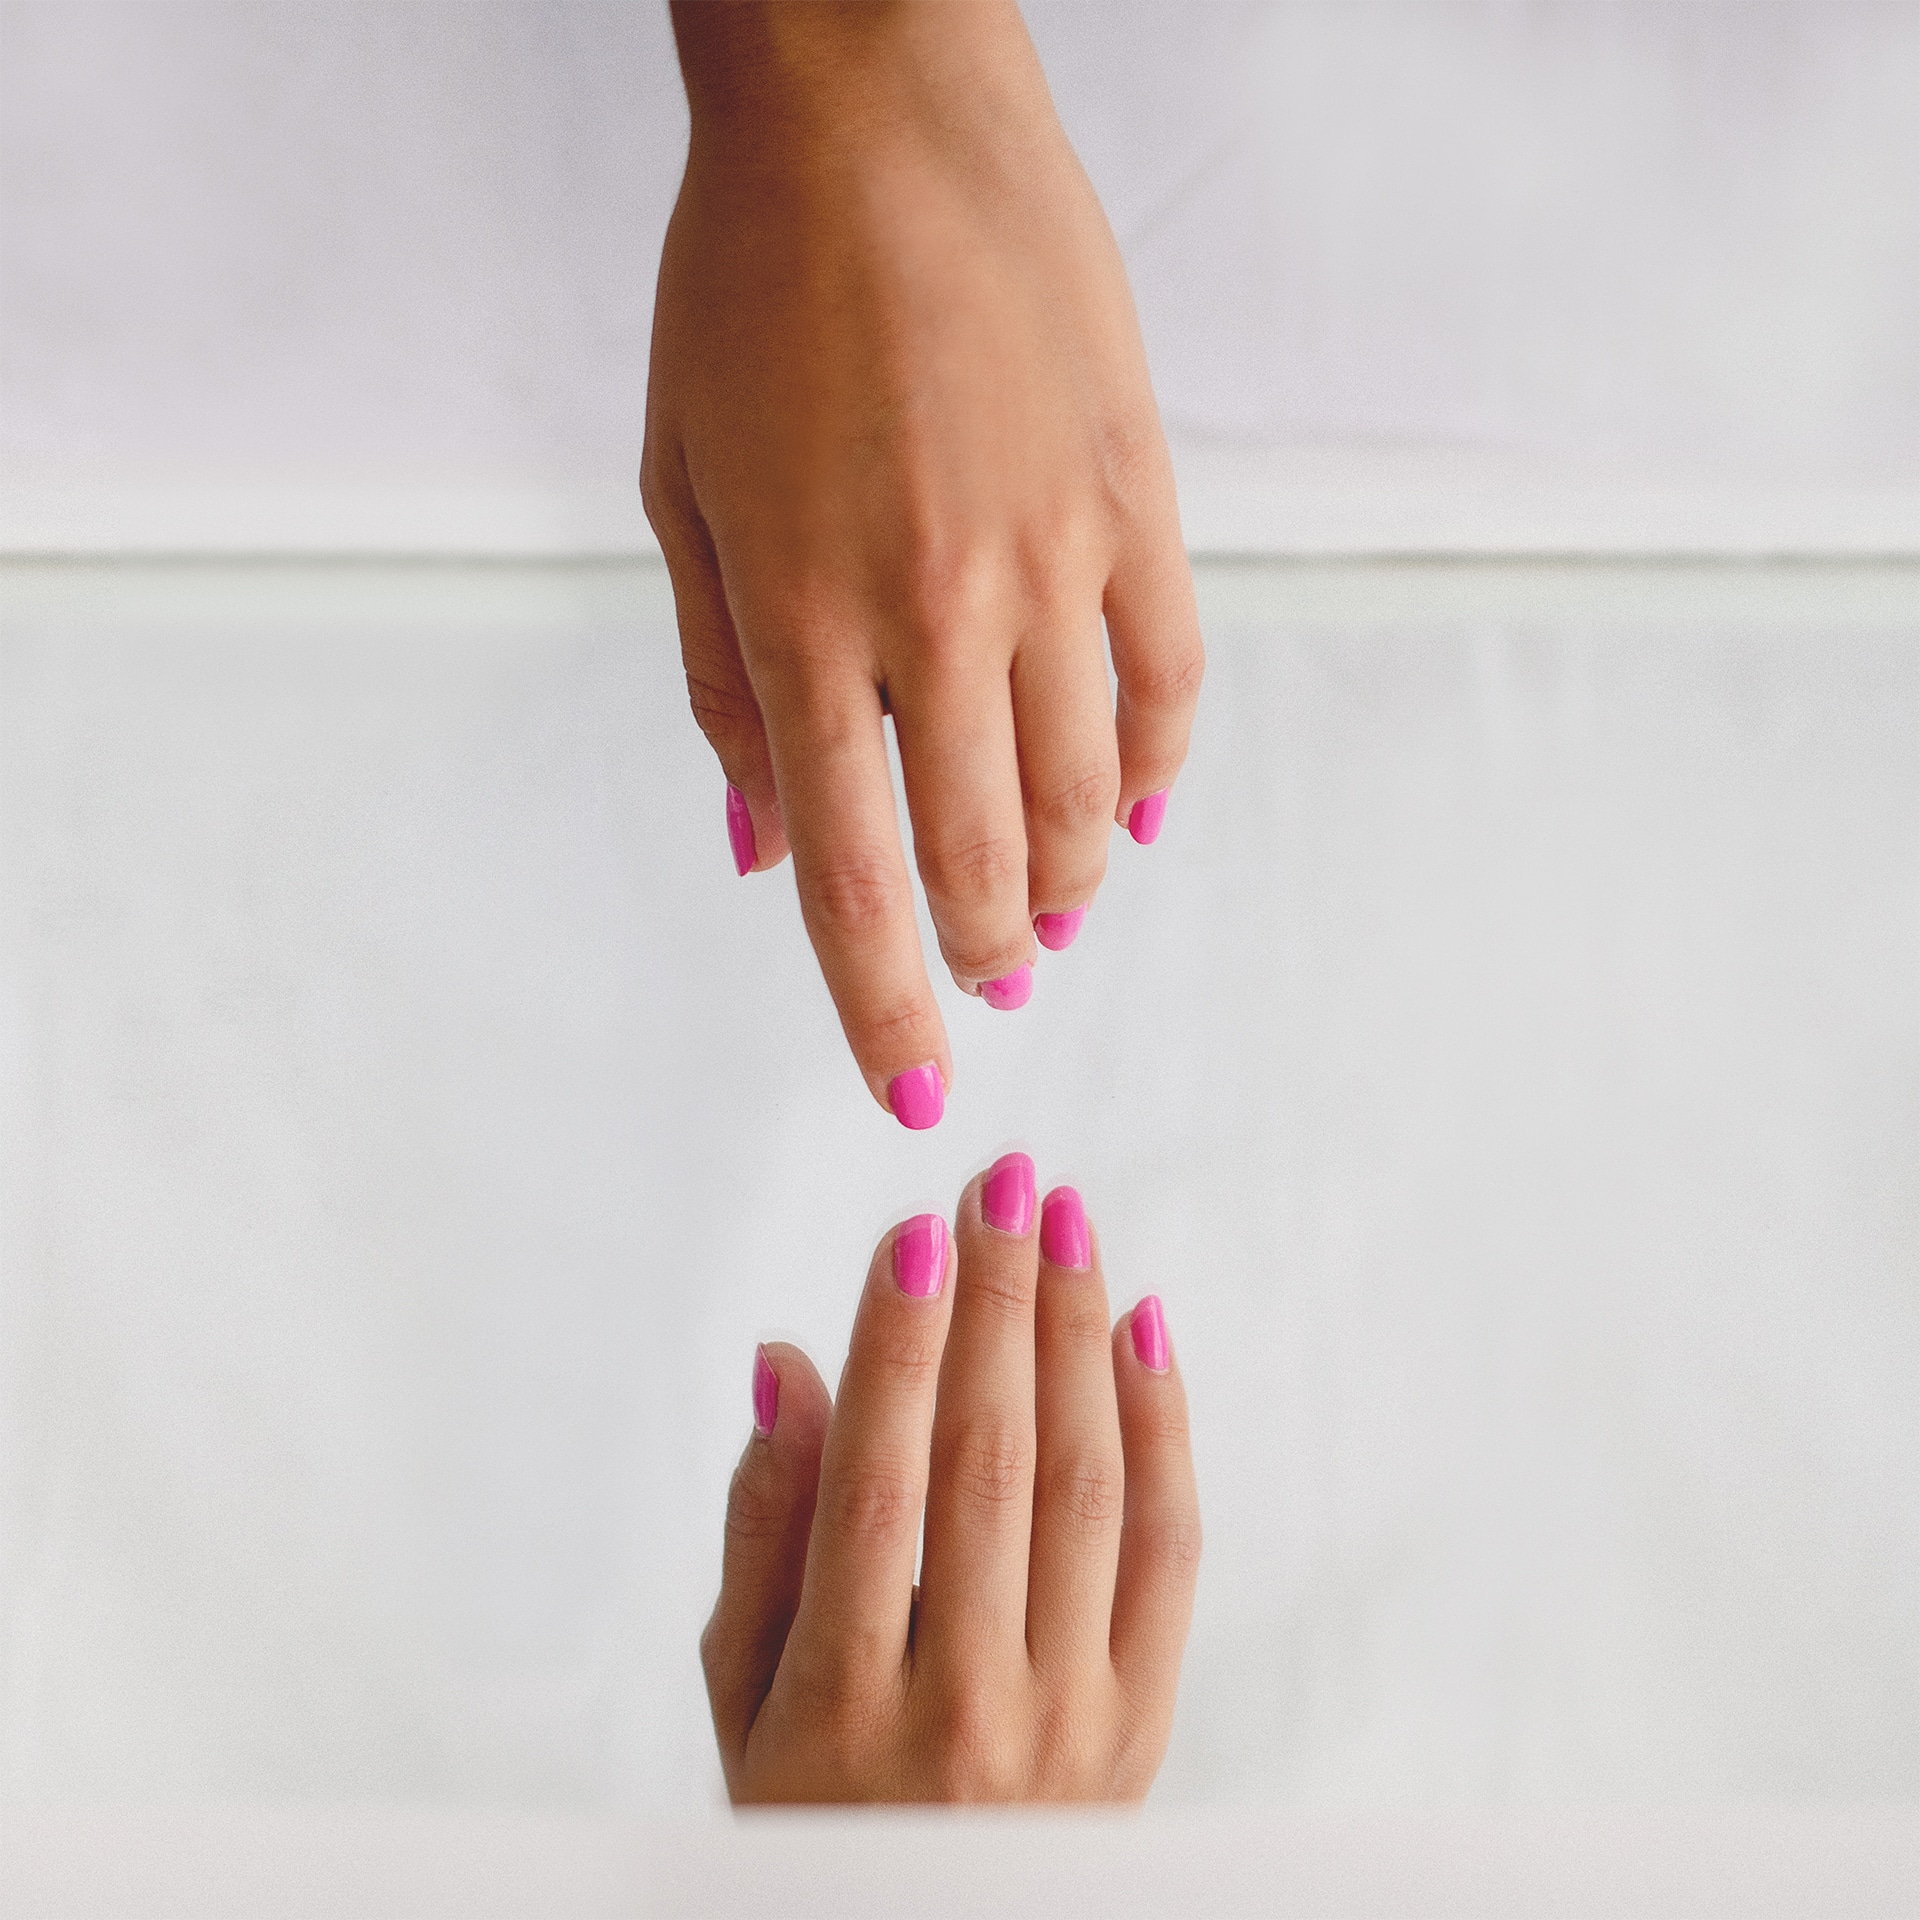 hand on mirror with pink nail polish by sienna